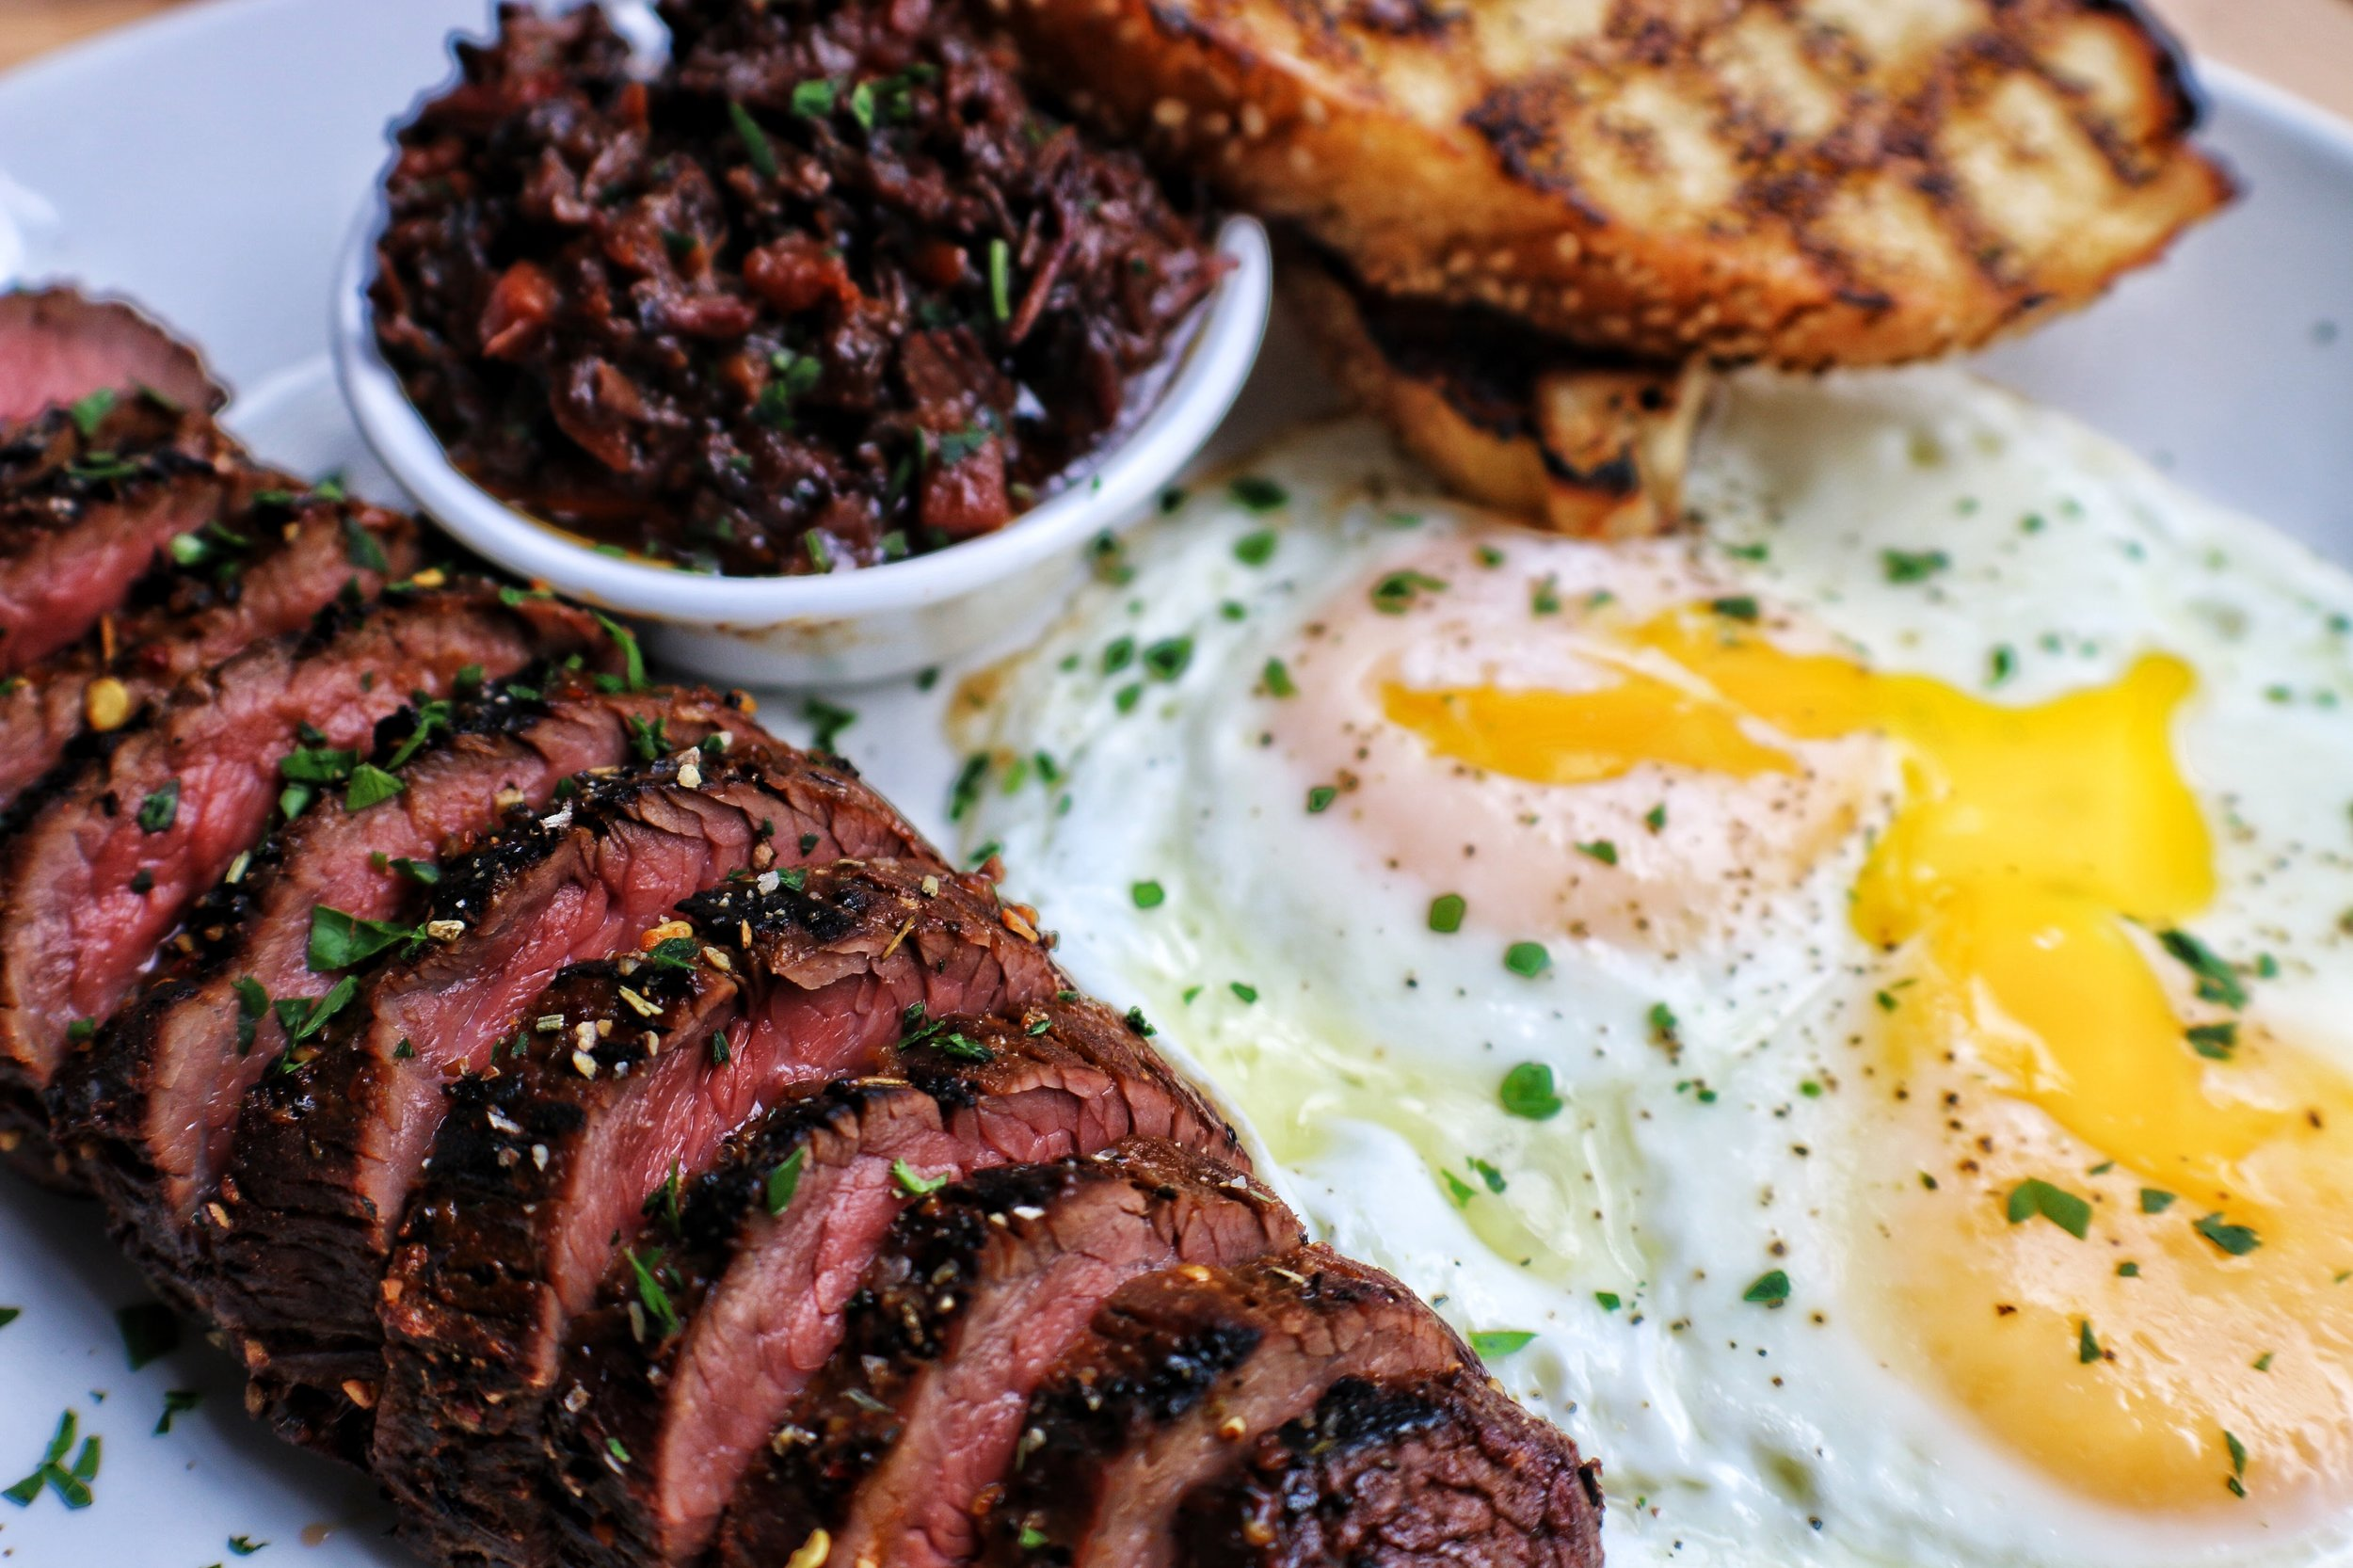 155 Steak & Eggs with Smoked Beef Cheek Marmalade